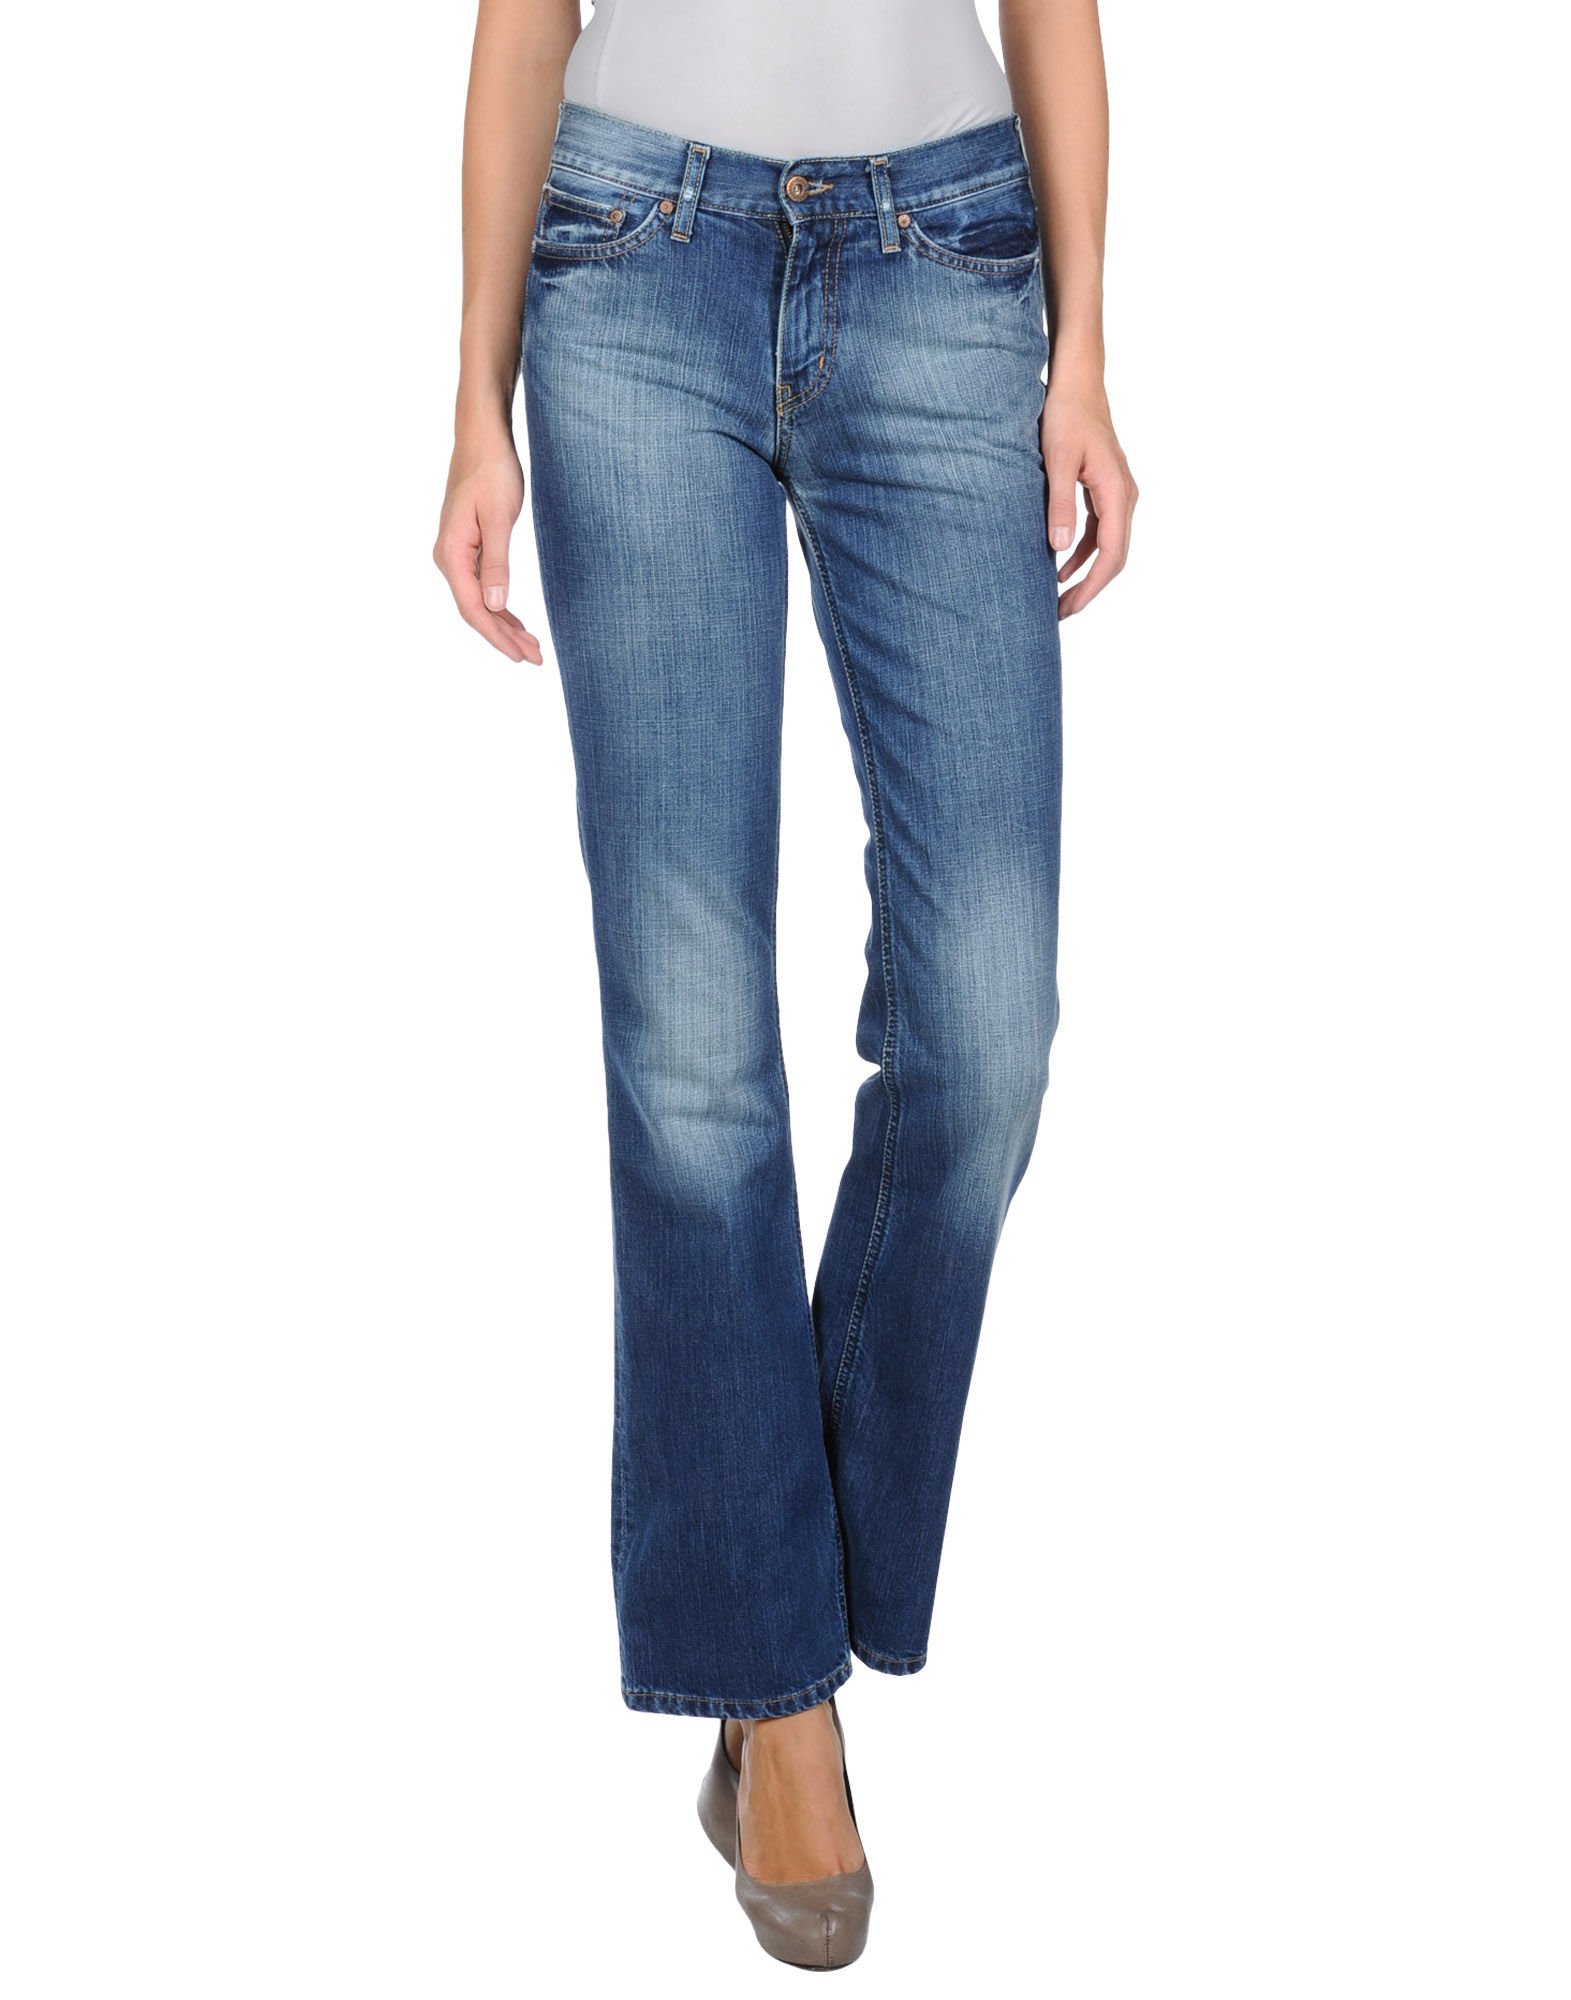 cost of pepe denim Pepe jeans women's jeans all auction  73 pepe jeans blue cotton denim jeans waist  hight quality 100% cotton size w25 l32 cost about £75 so grab bargain.